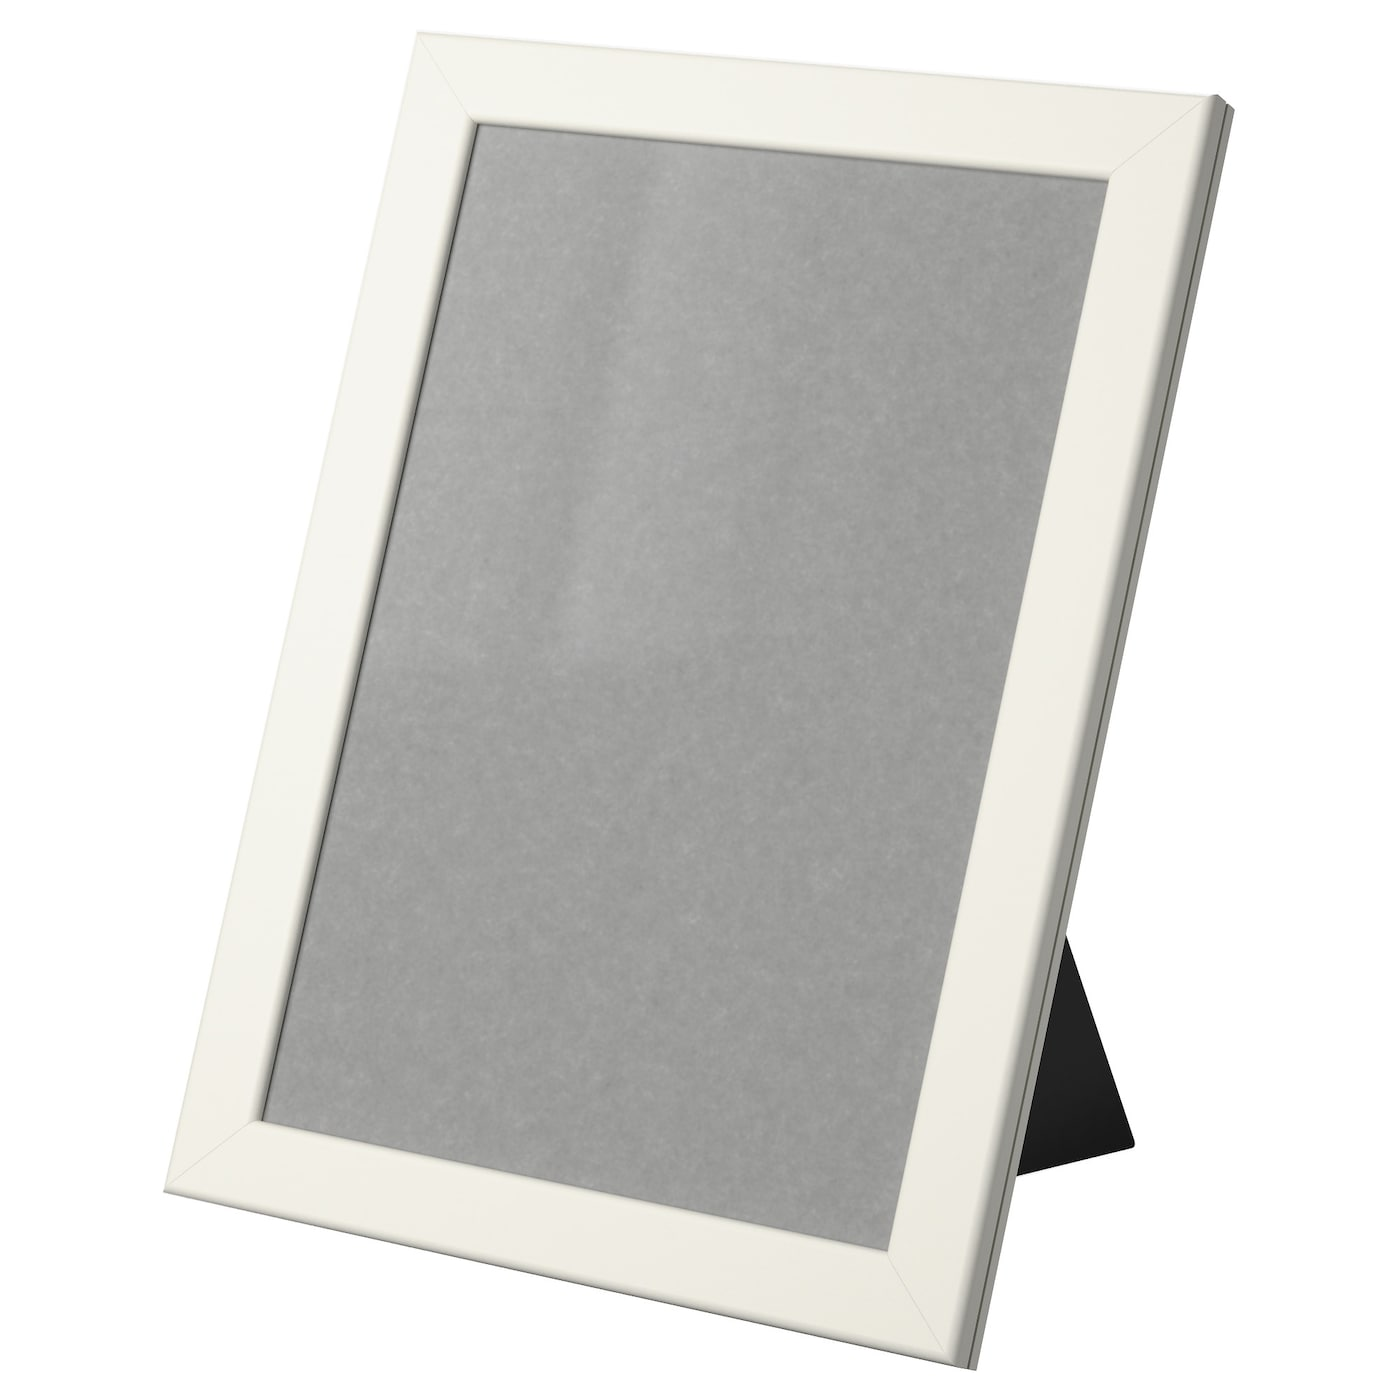 IKEA HEMMINGSBO front opening picture frame Fits A4 size pictures.